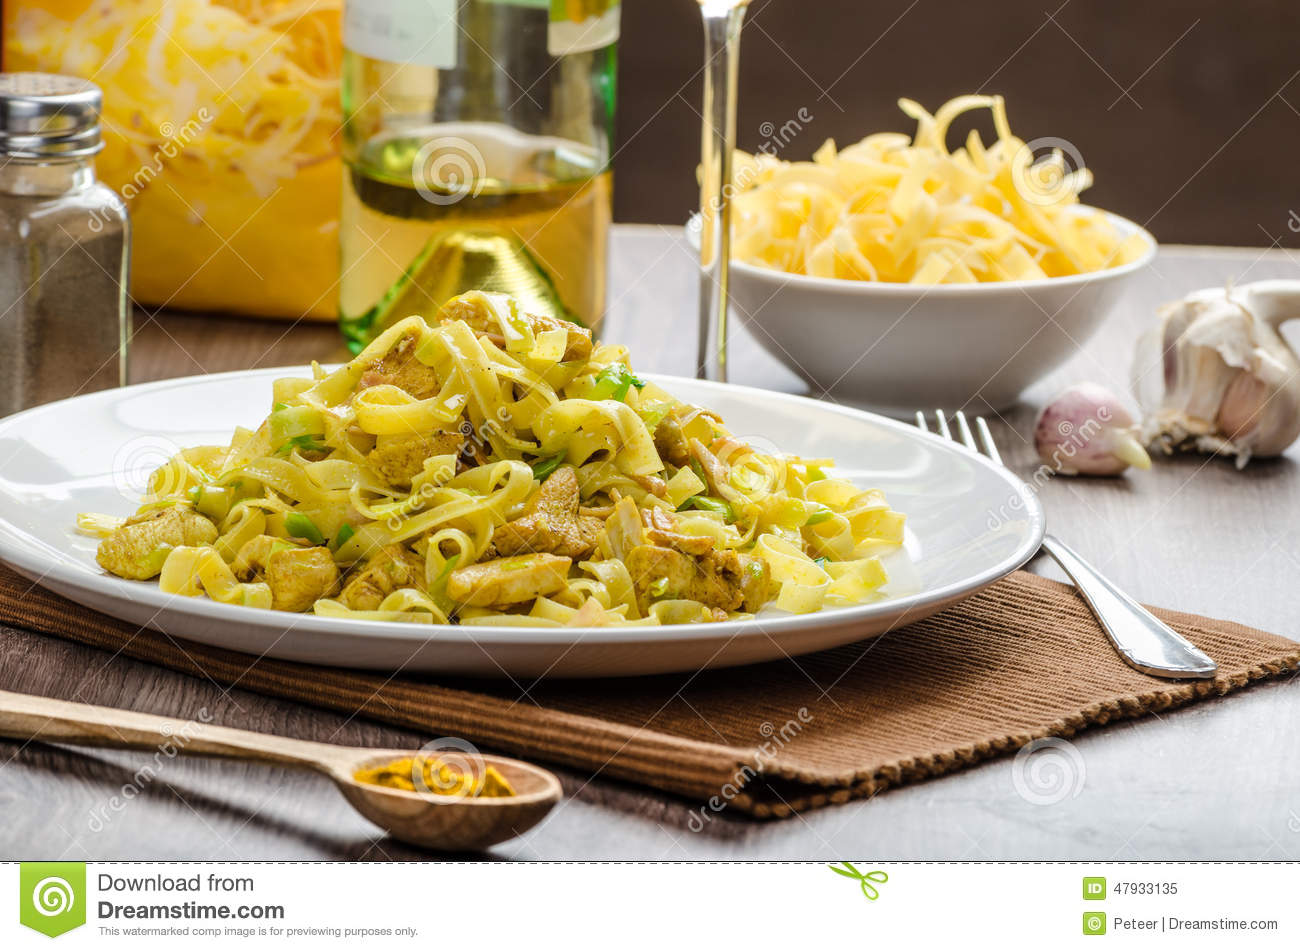 Tagliatelle With Chicken Curry, Leek And Garlic Stock Photo